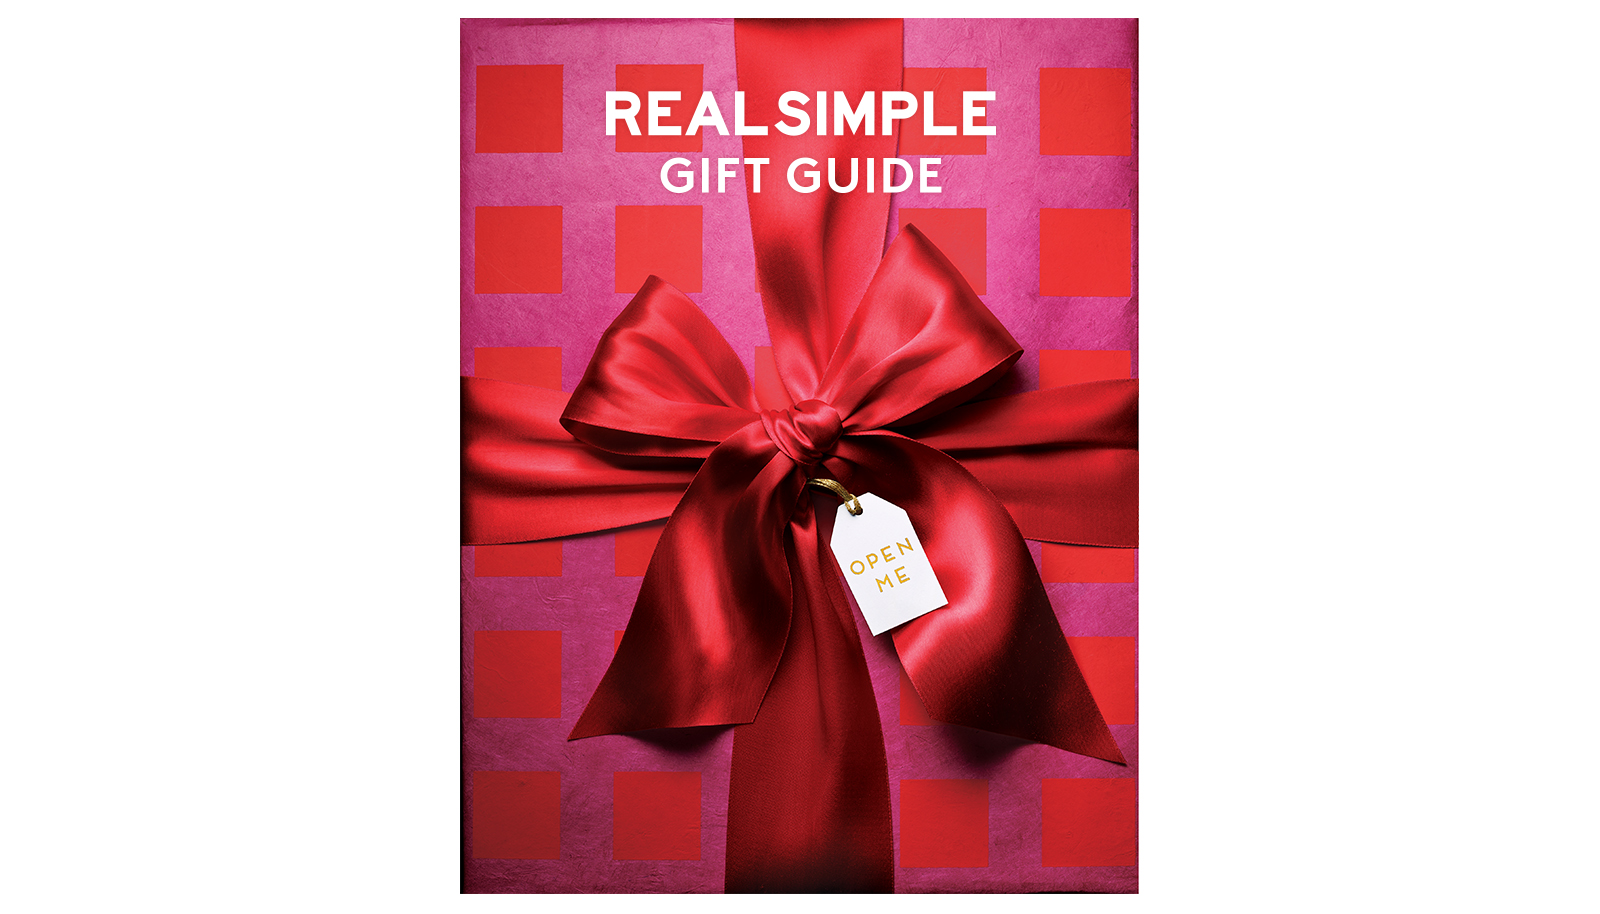 Gift Guide app splash screen